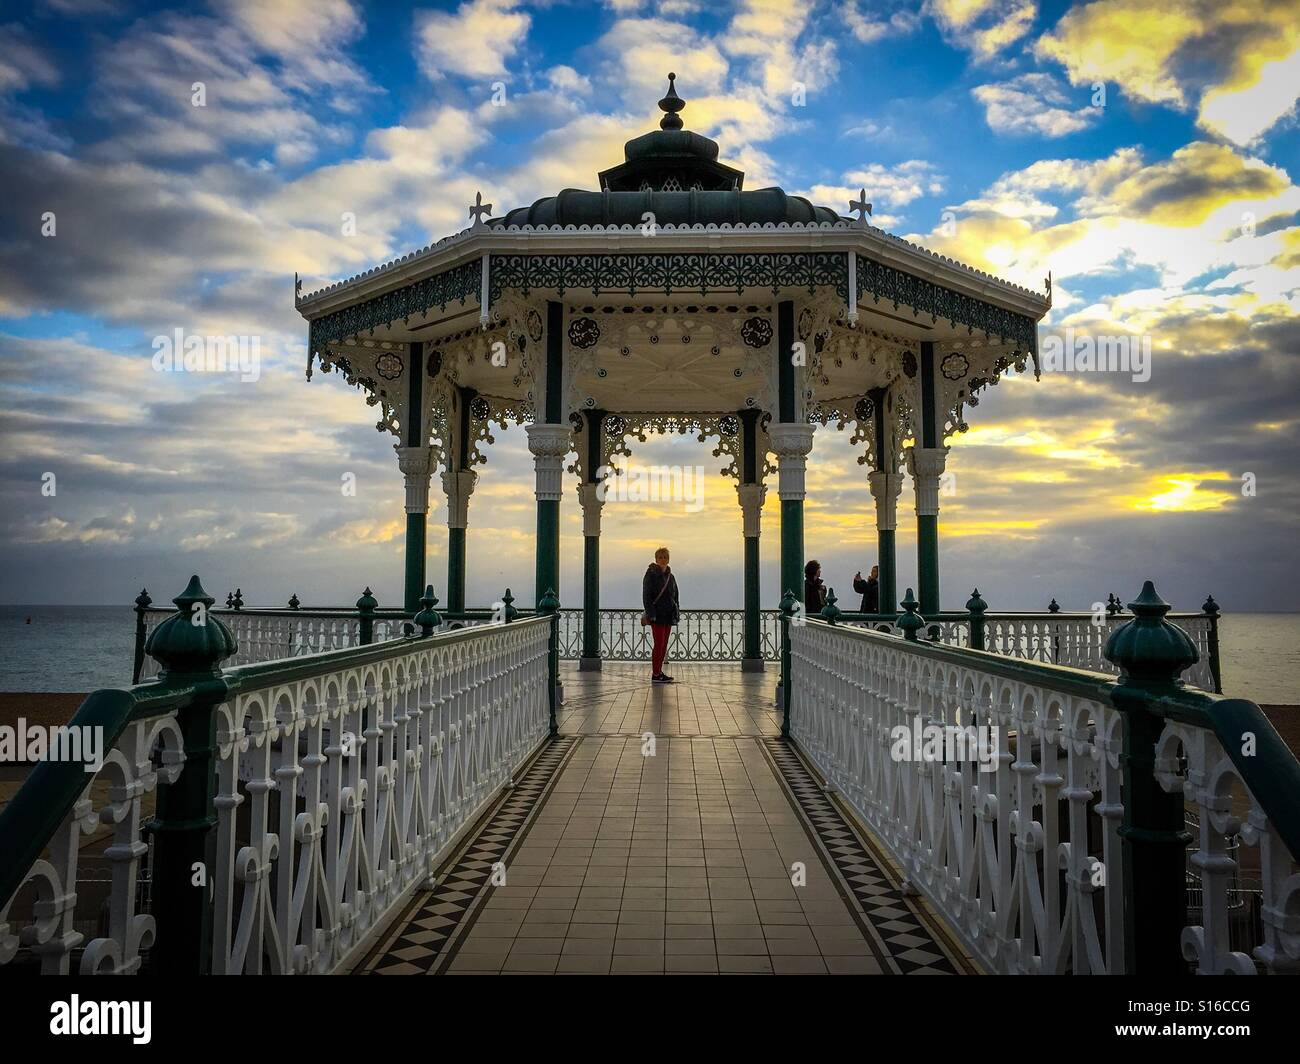 Bandstand overlooking Brighton Beach - Stock Image